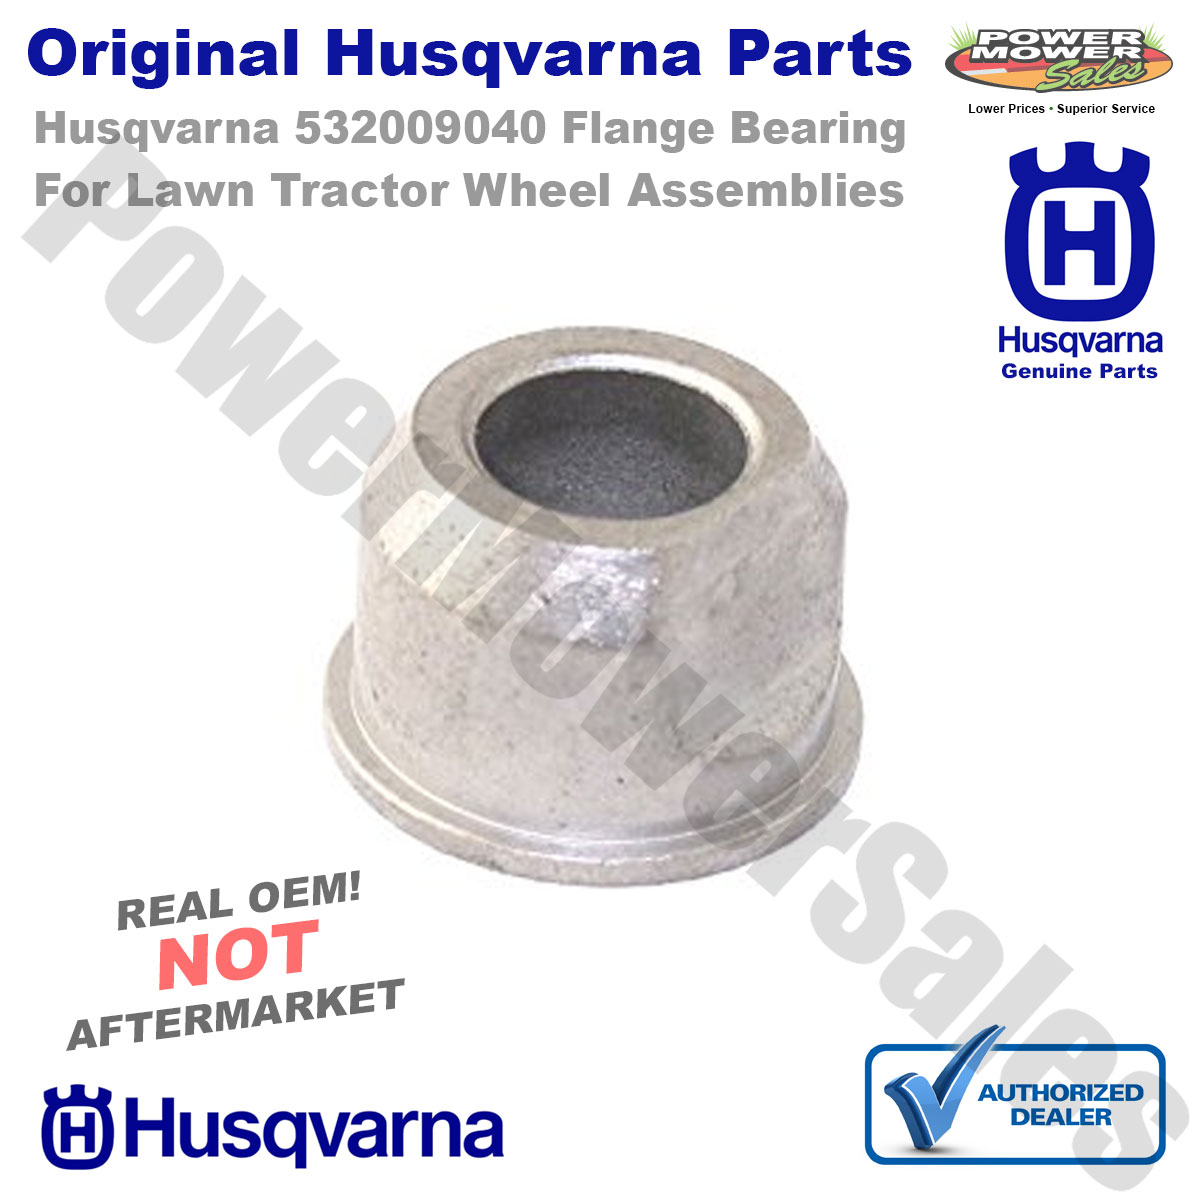 Replaces 9040H Wheel Bearing Flange for Riding Lawn Mowers NEW GENUINE 8